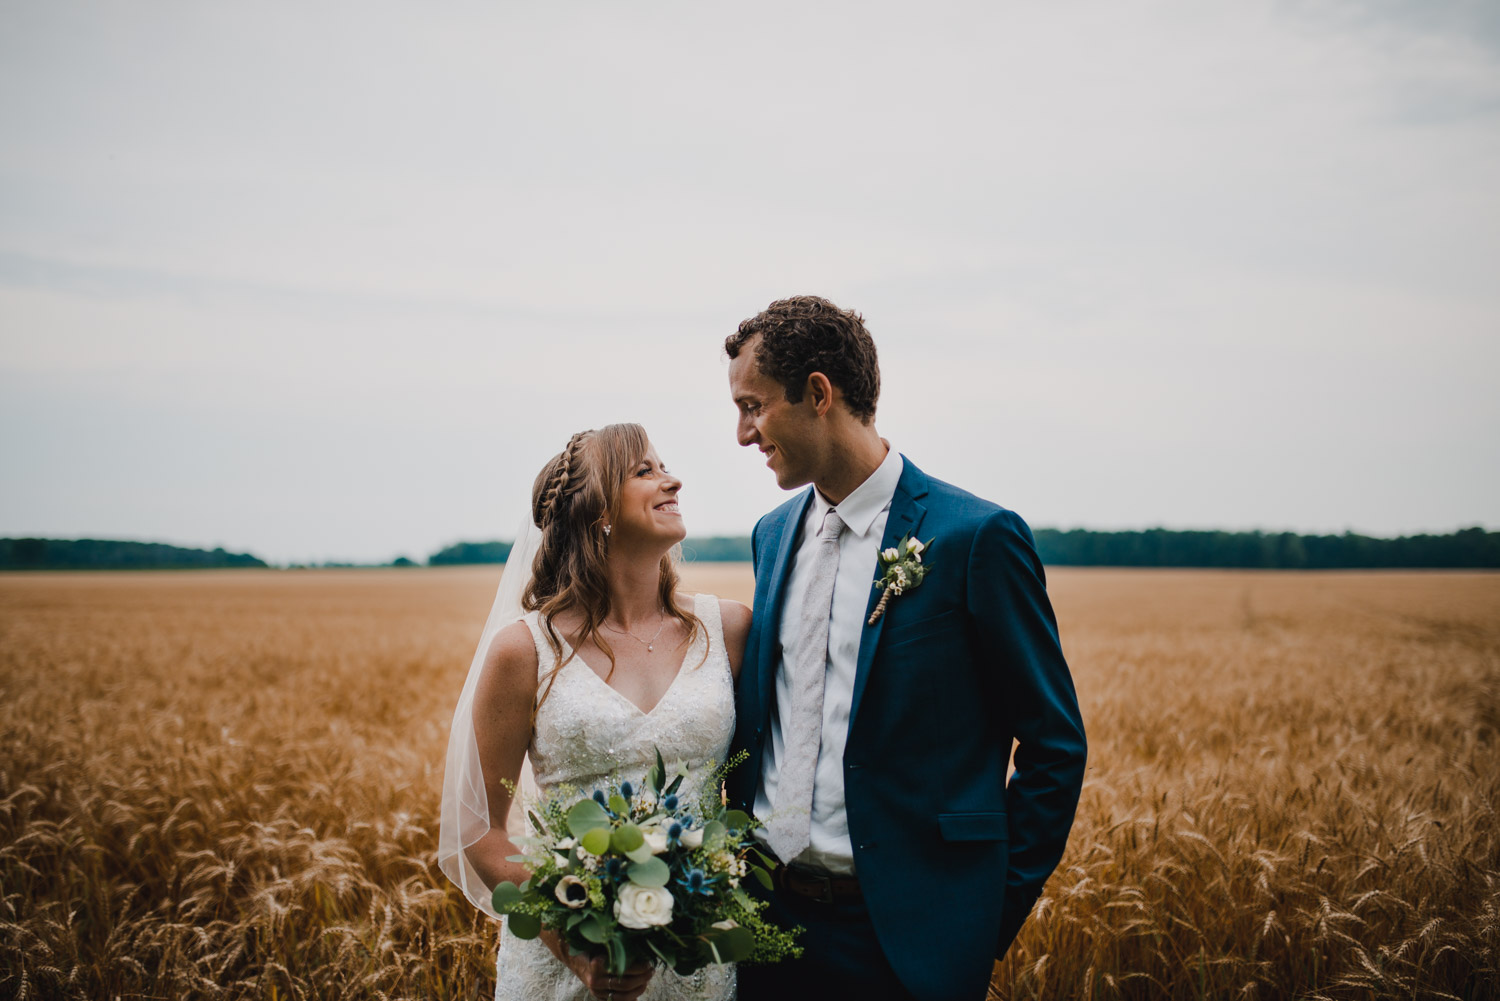 The bride and groom looking at eachother lovingly while standing in front of a wheat field